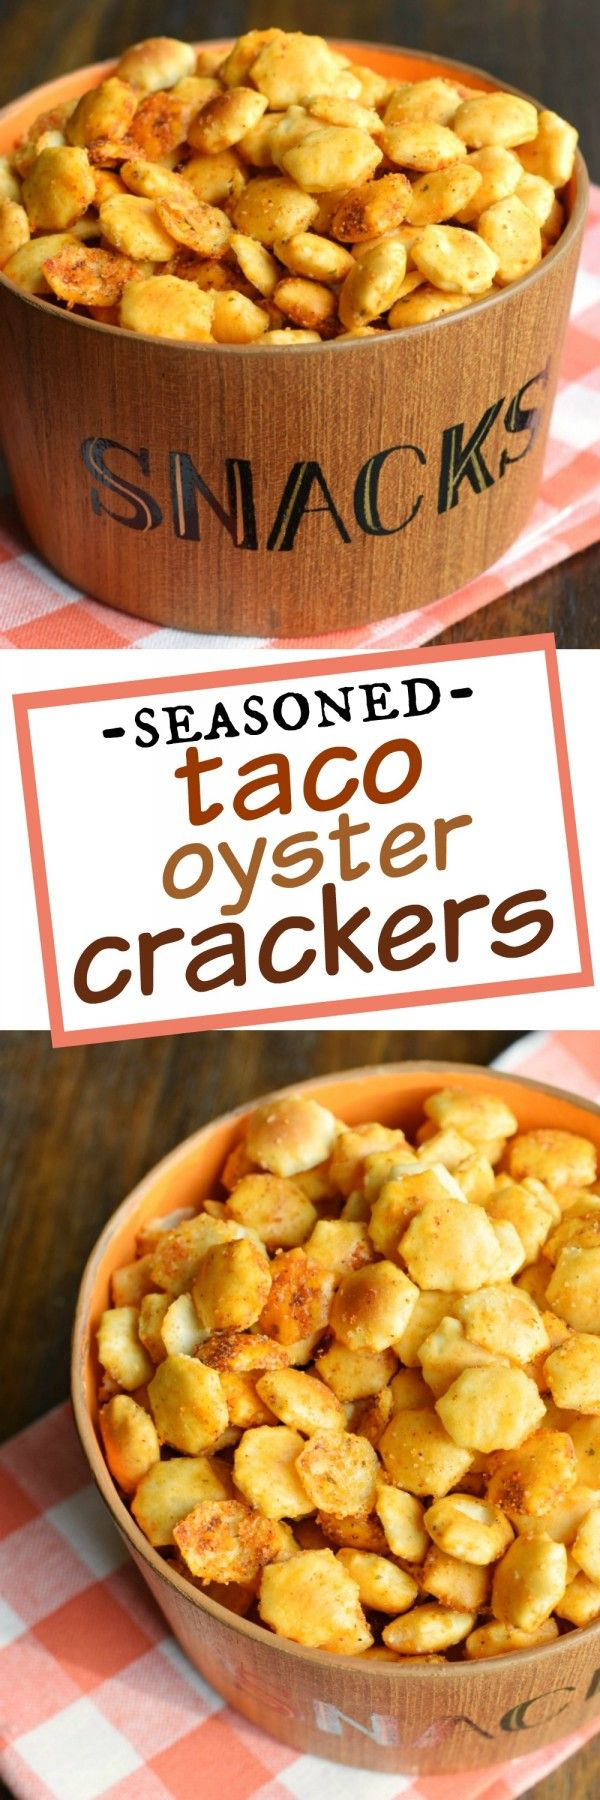 3 ingredients and no oven needed (made in a paper bag). This Taco Seasoned Oyster Crackers recipe is a great alternative to chips and pretzels!